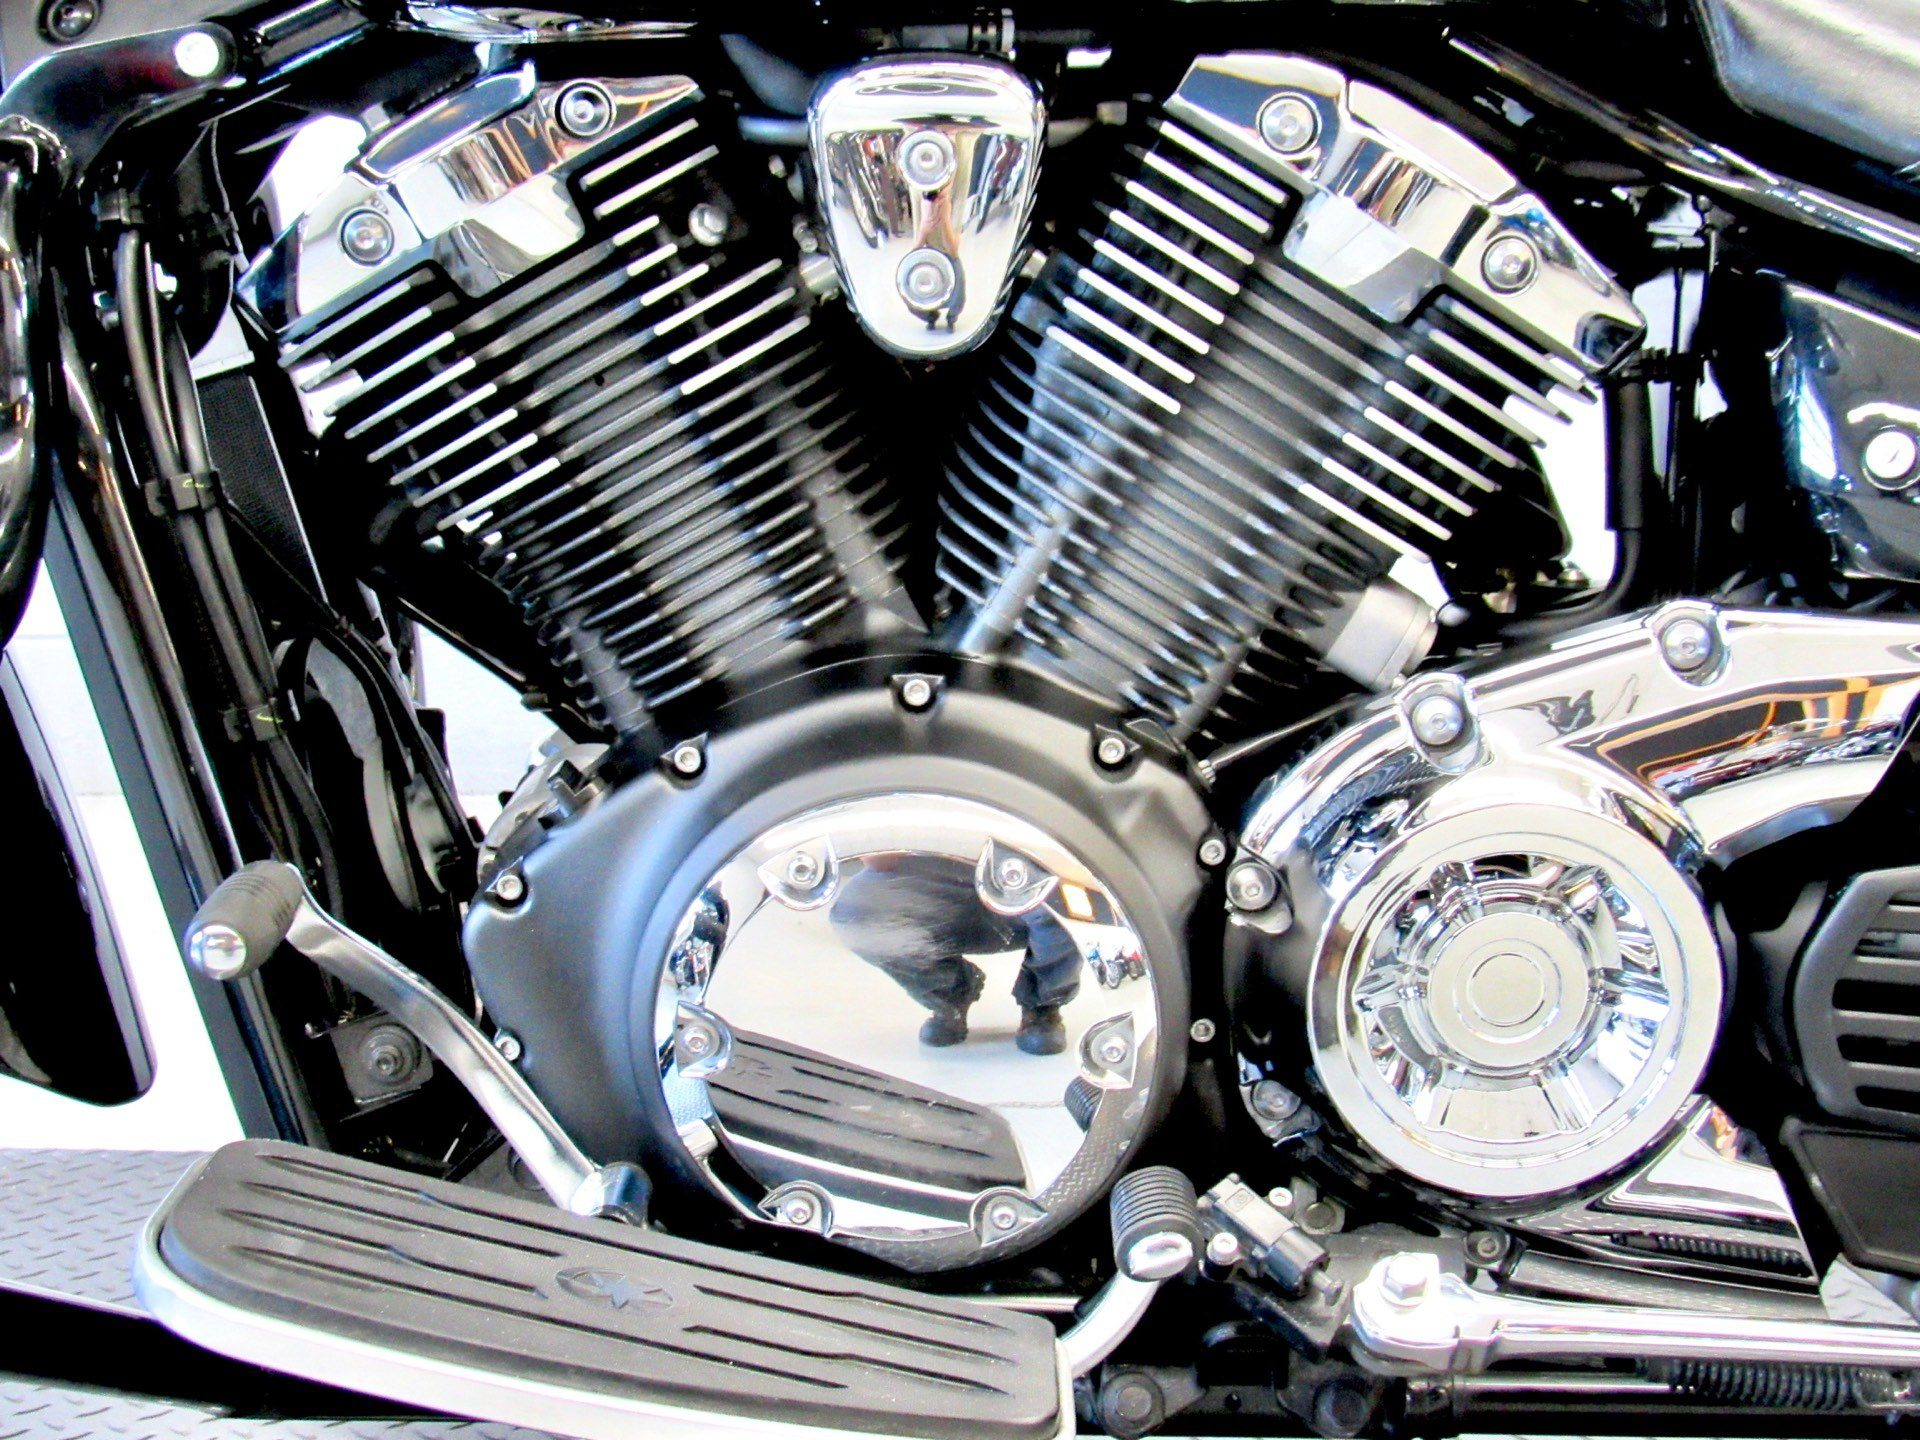 2015 Yamaha V Star 1300 Deluxe in Fredericksburg, Virginia - Photo 19